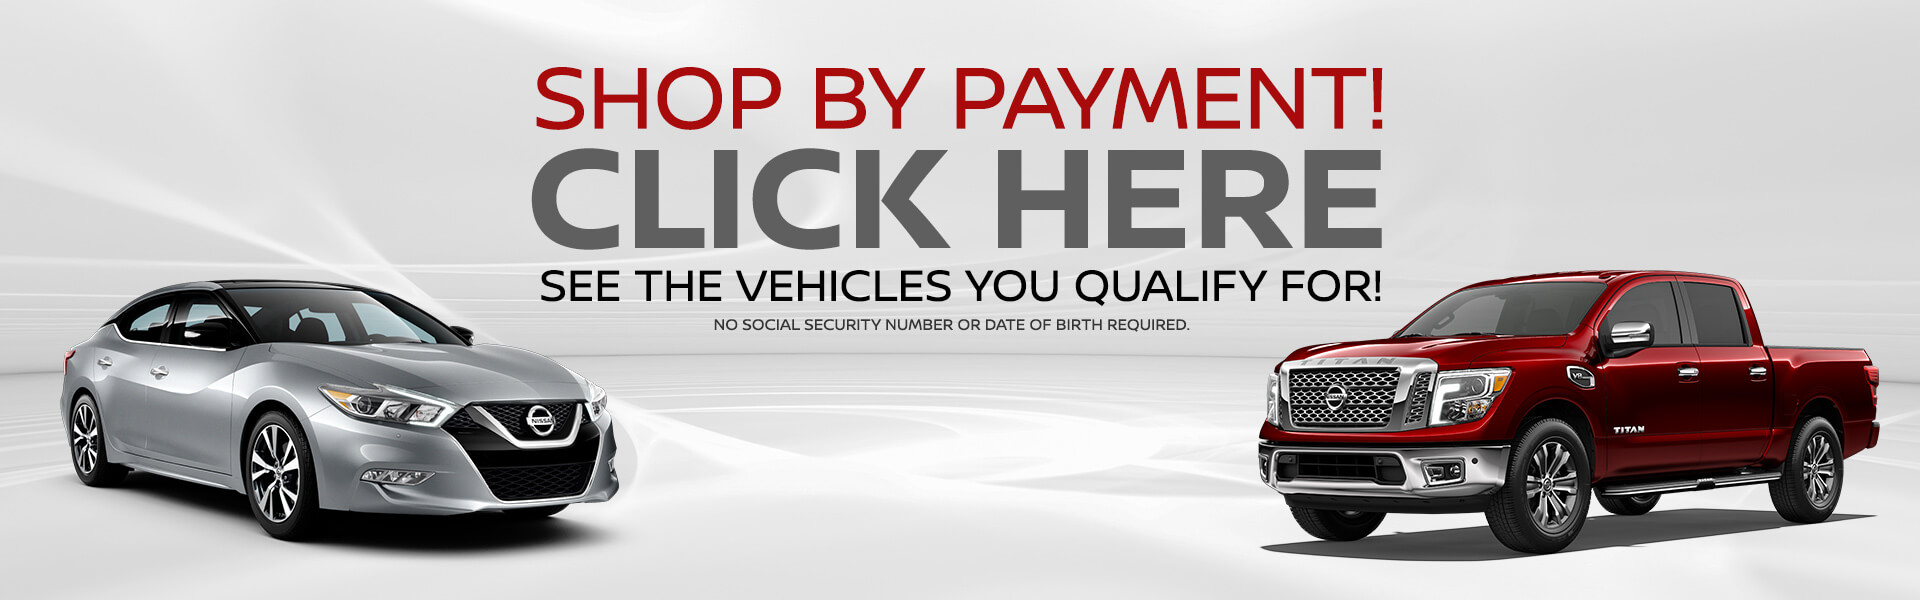 Used Vehicles >> 104 Used Cars Trucks And Suvs In Stock In El Paso Tx